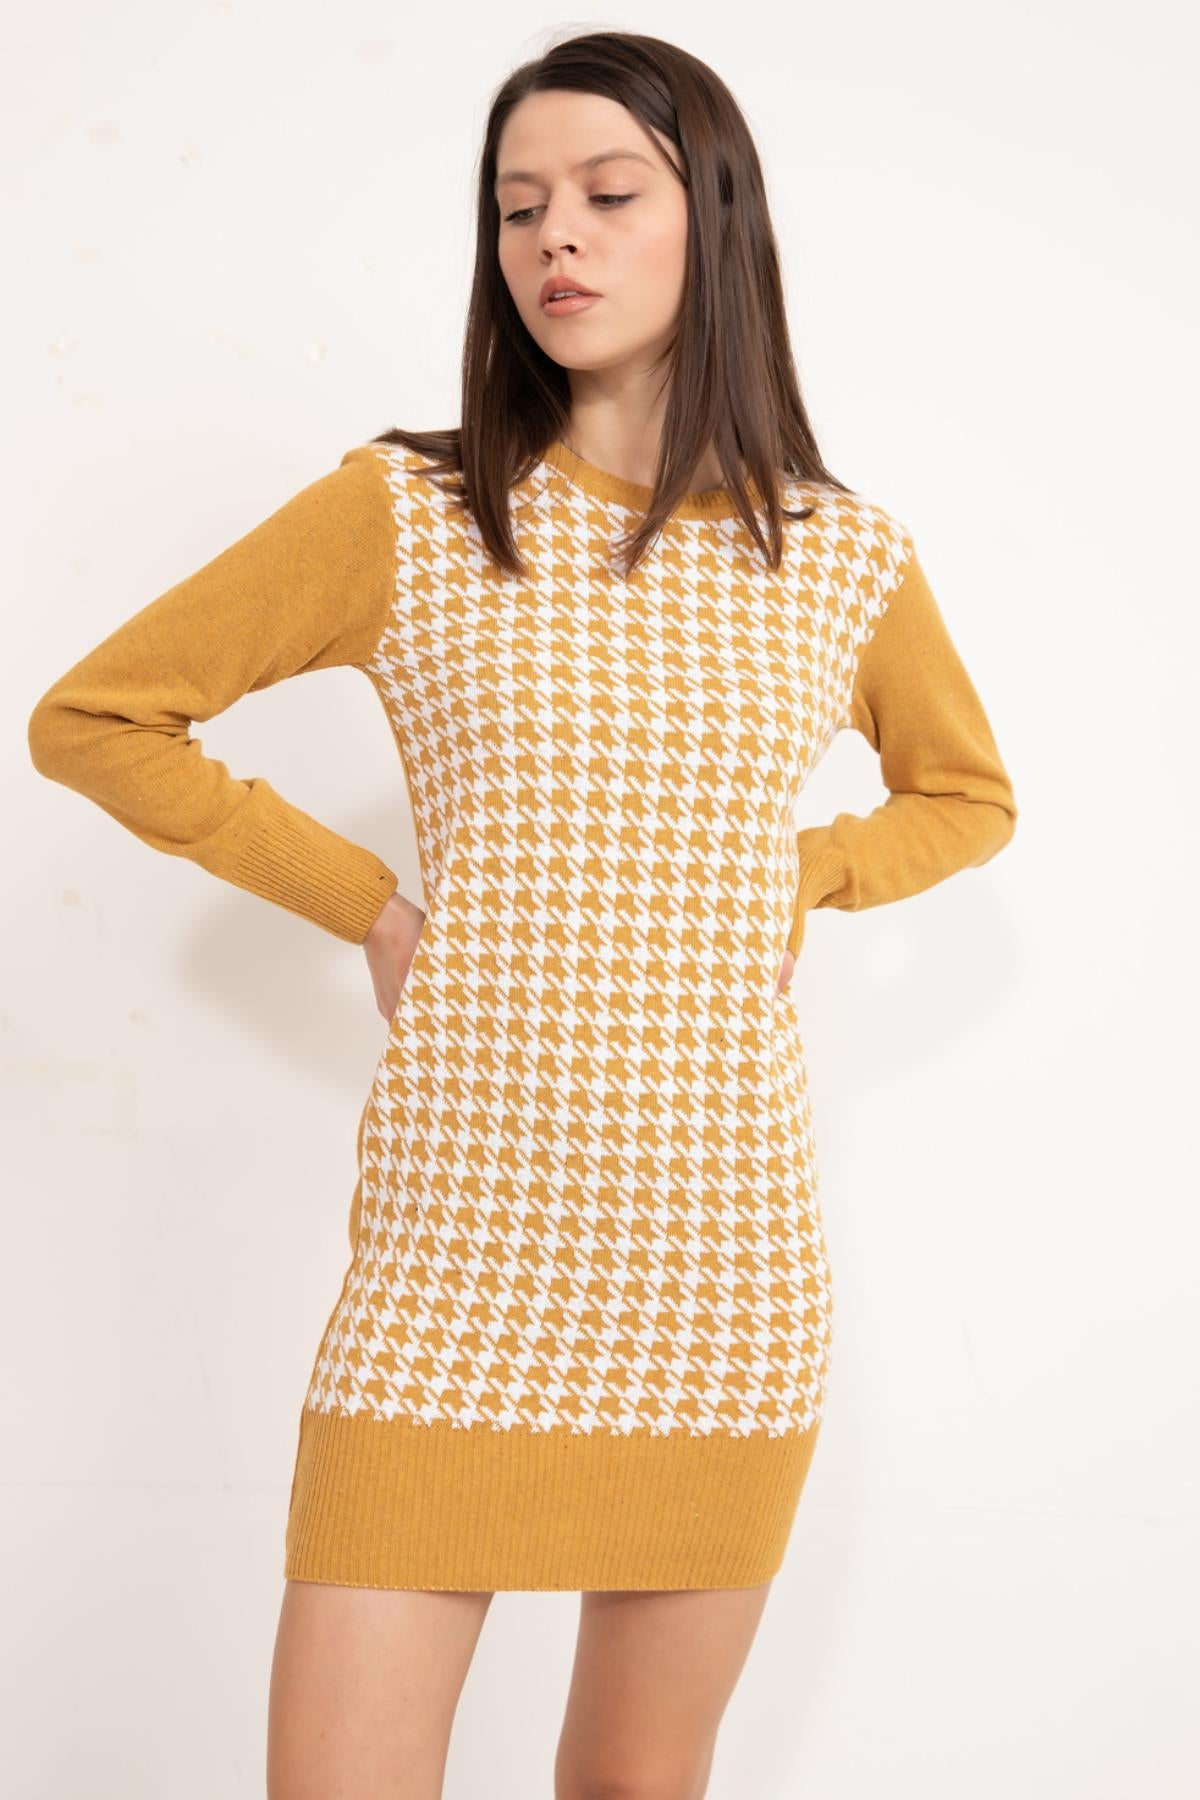 Saffron Front patterned knitwear tunic